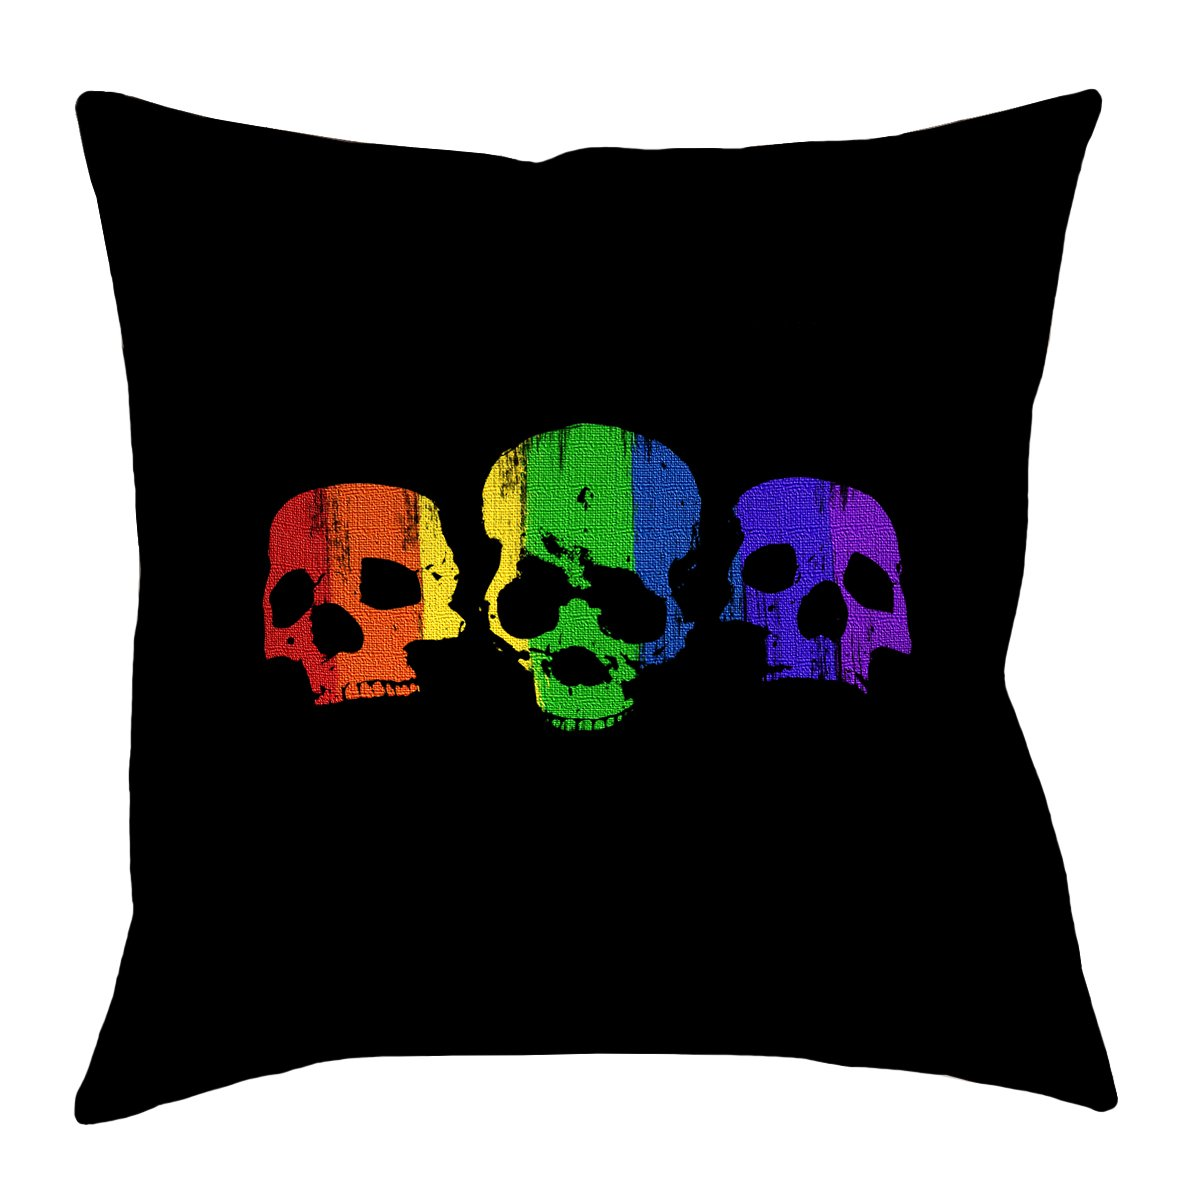 Artverse Katelyn Smith 26 X 26 Spun Polyester Double Sided Print With Concealed Zipper Insert Rainbow Skulls Pillow